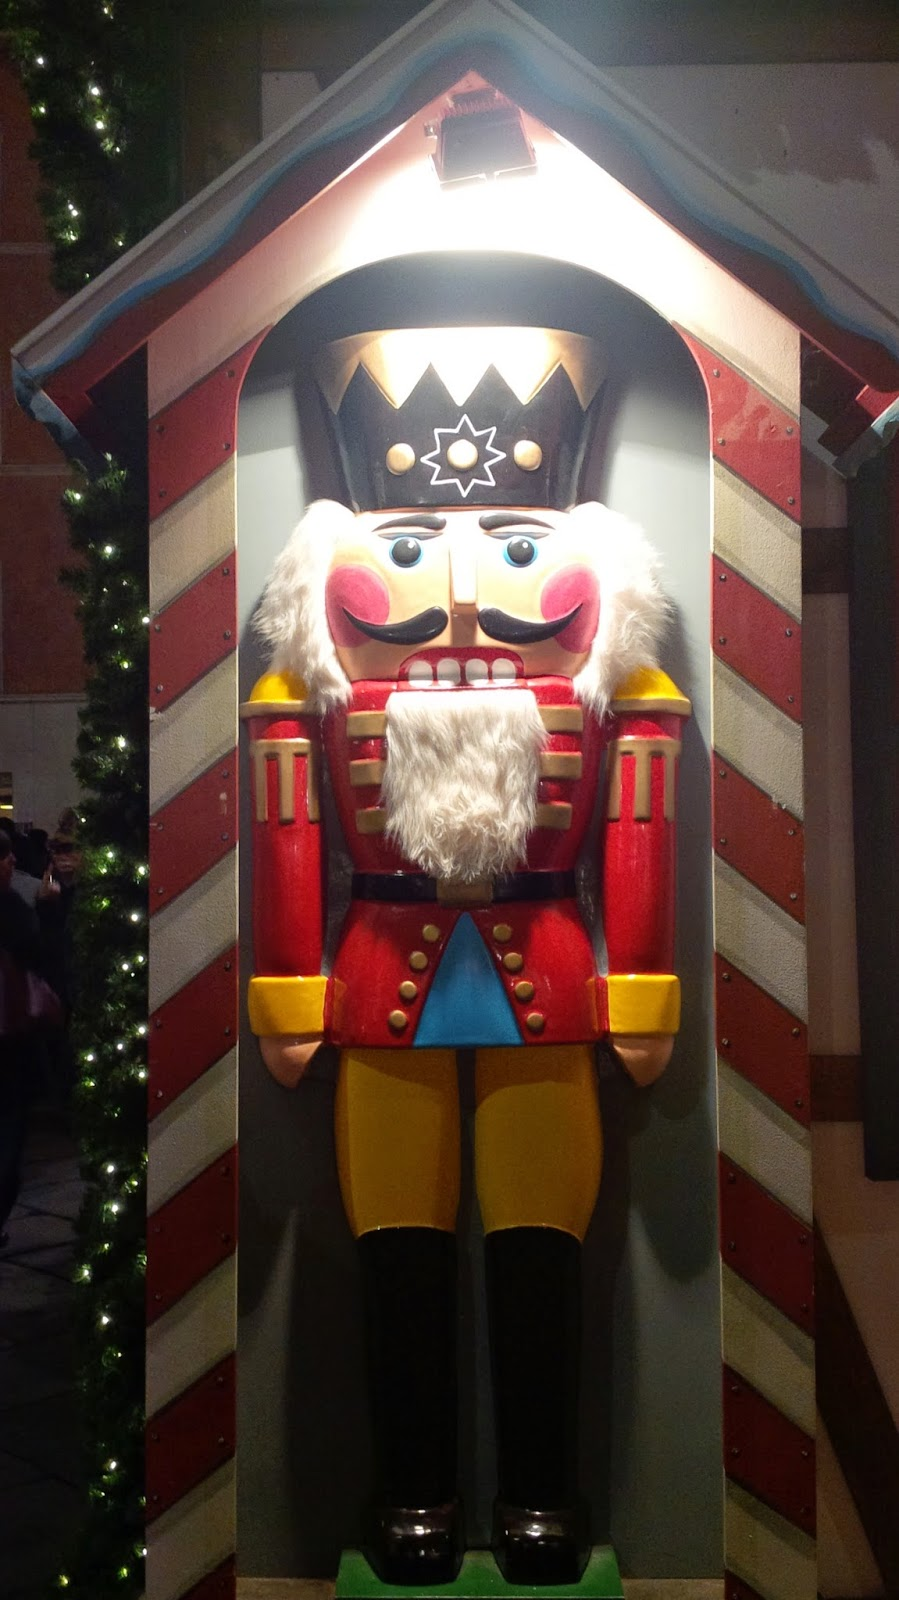 The Nutcracker at the Christmas market in Verona